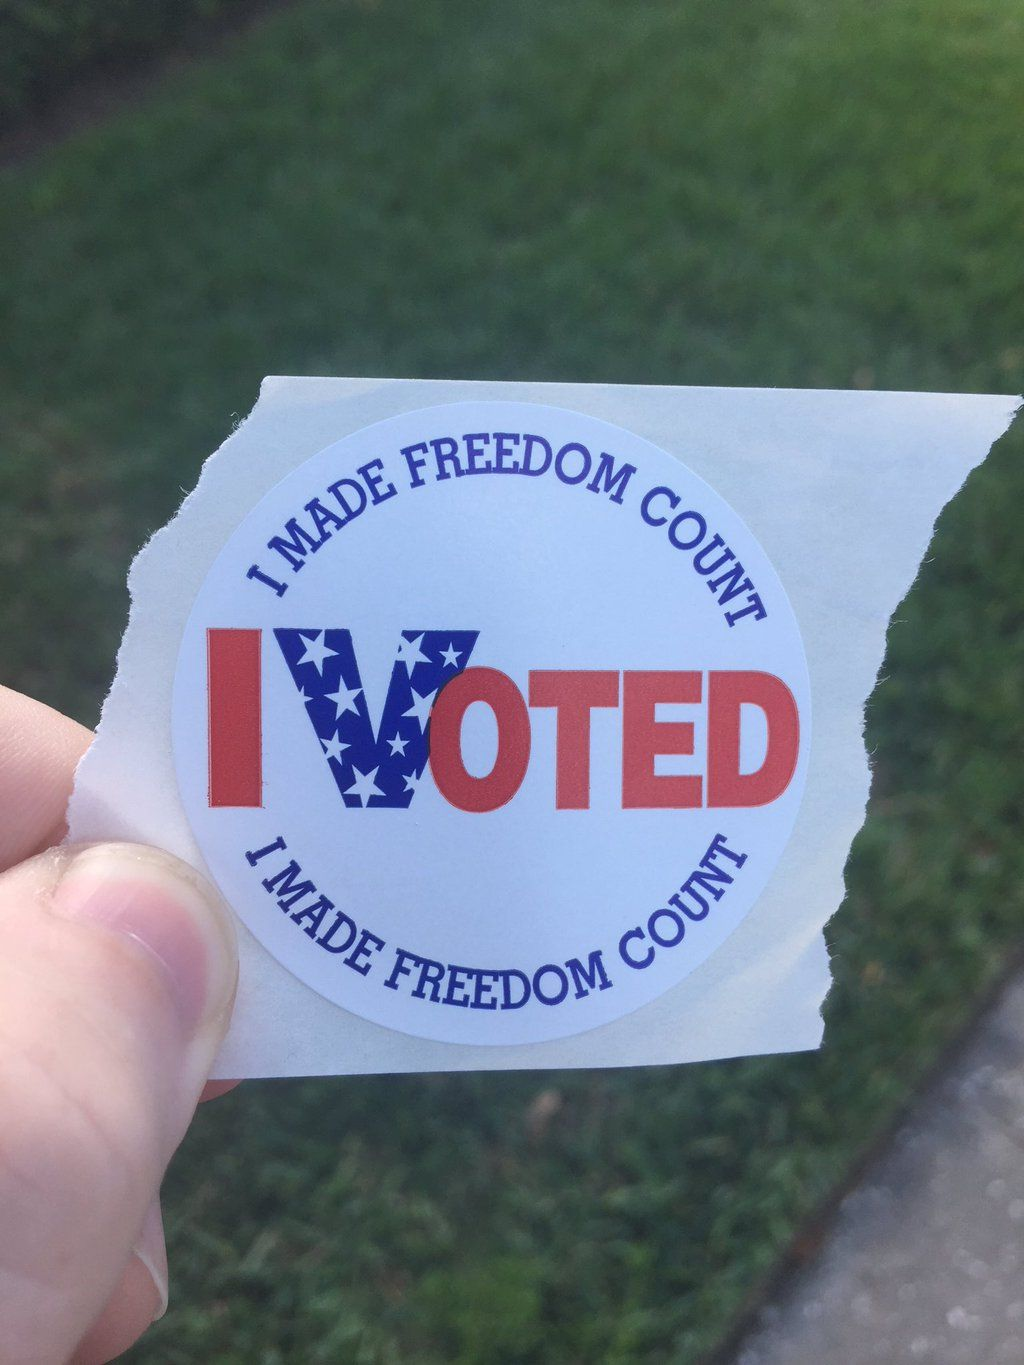 """Evan Perdiew on Twitter: """"Proud to have voted for @marcorubio today! @StopTrumpPAC #Marcomentum #NeverTrump https://t.co/9ME3z9clhw"""""""